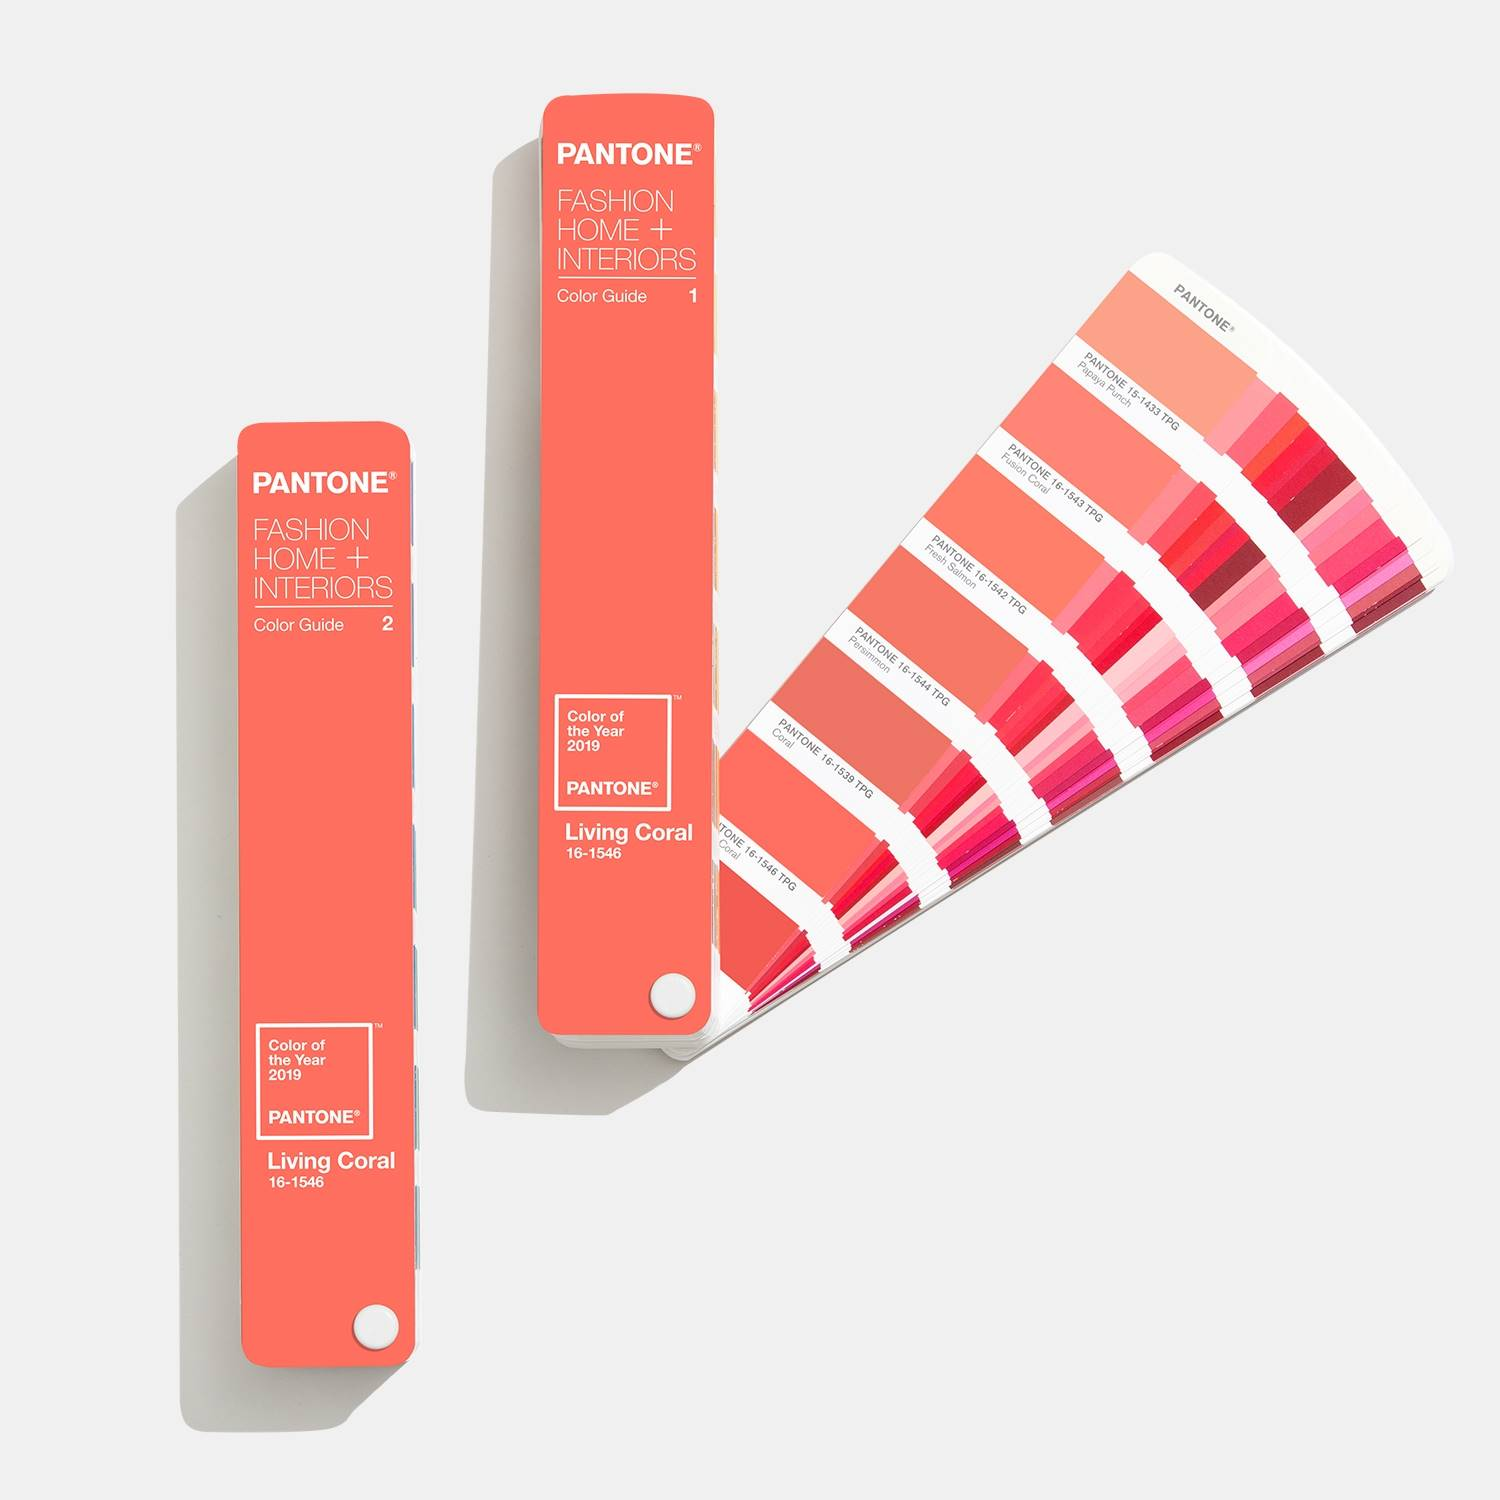 COY-pantone-fashion-home-interiors-tpg-limited-edition-color-of-the-year-2019-color-fan-deck-color-guide-1. Un tono que conecta